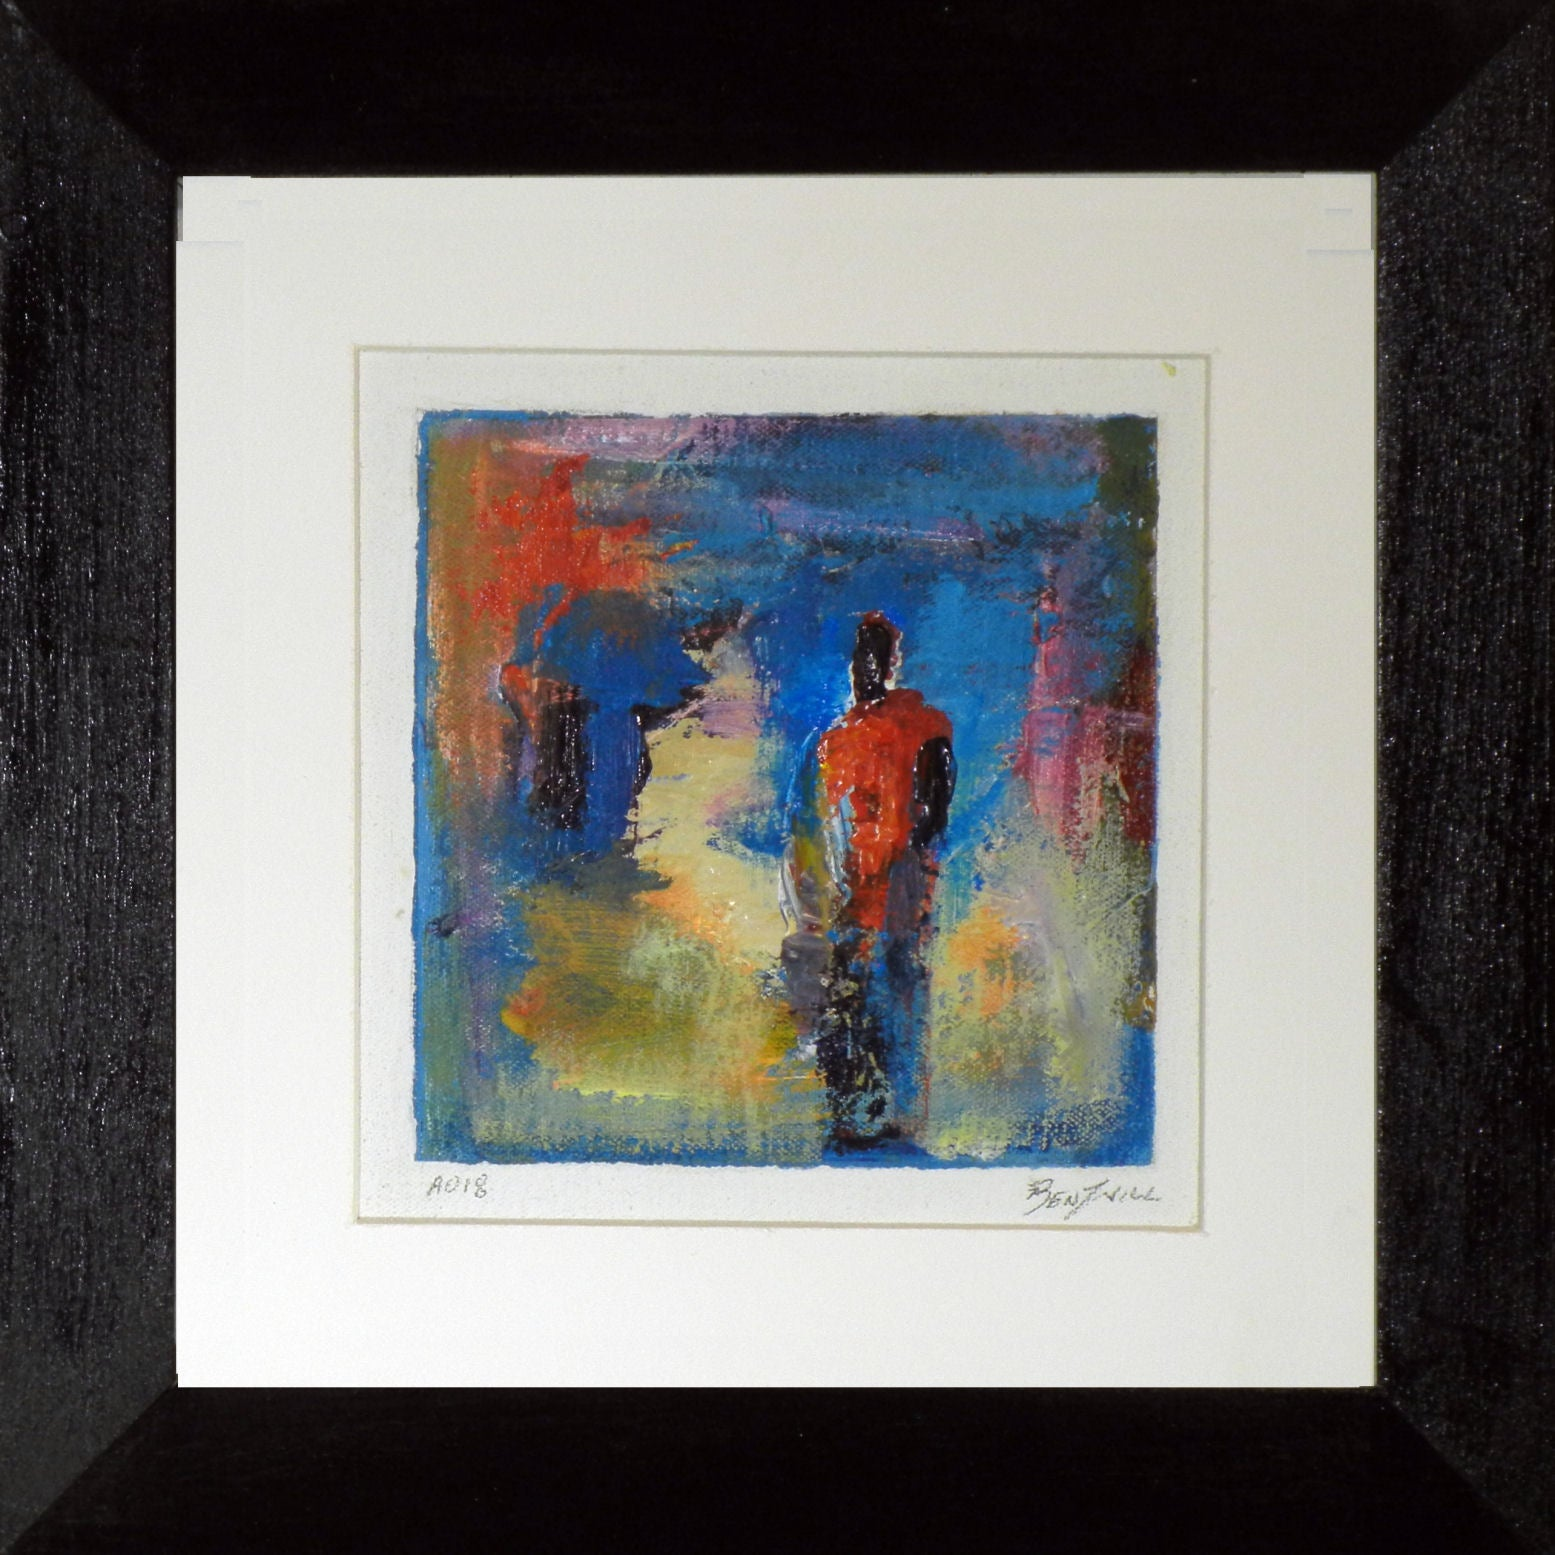 Framed Small Modern Art Painting A018